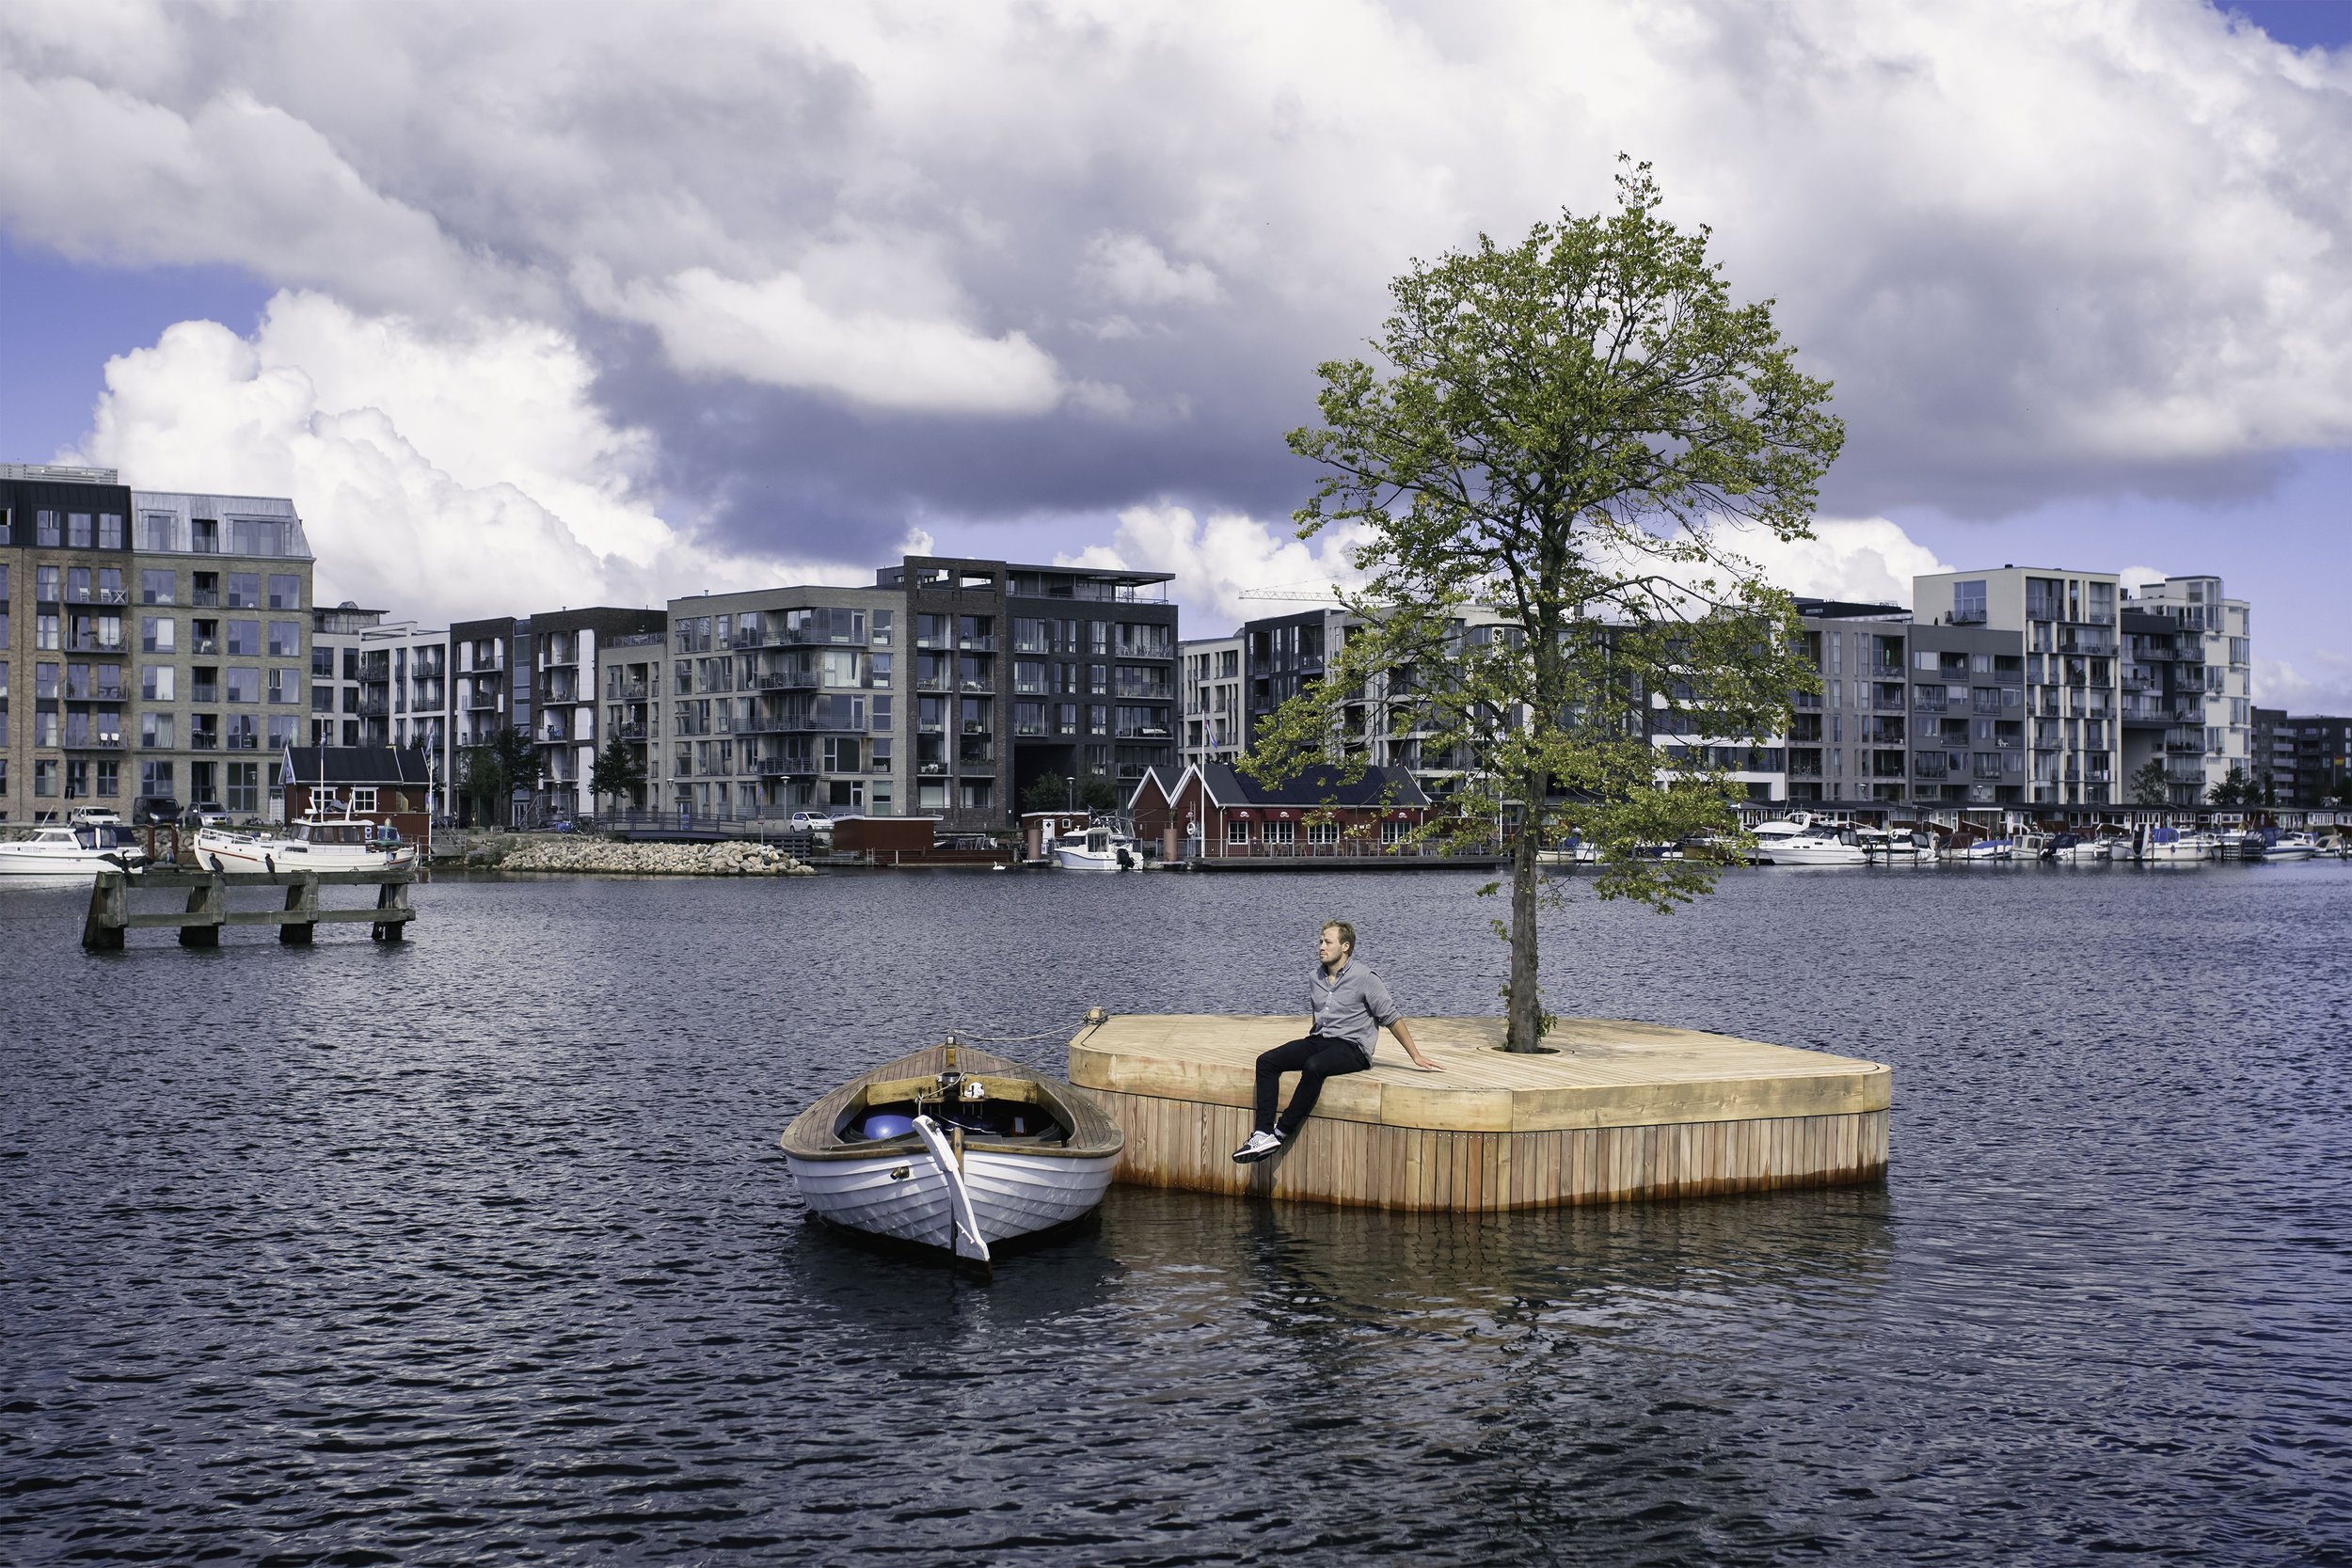 CPH-Ø1 is the FIRST IN A series of new experimental FLOATING PUBLIC spaces IN COPENHAgEN HARBOR -